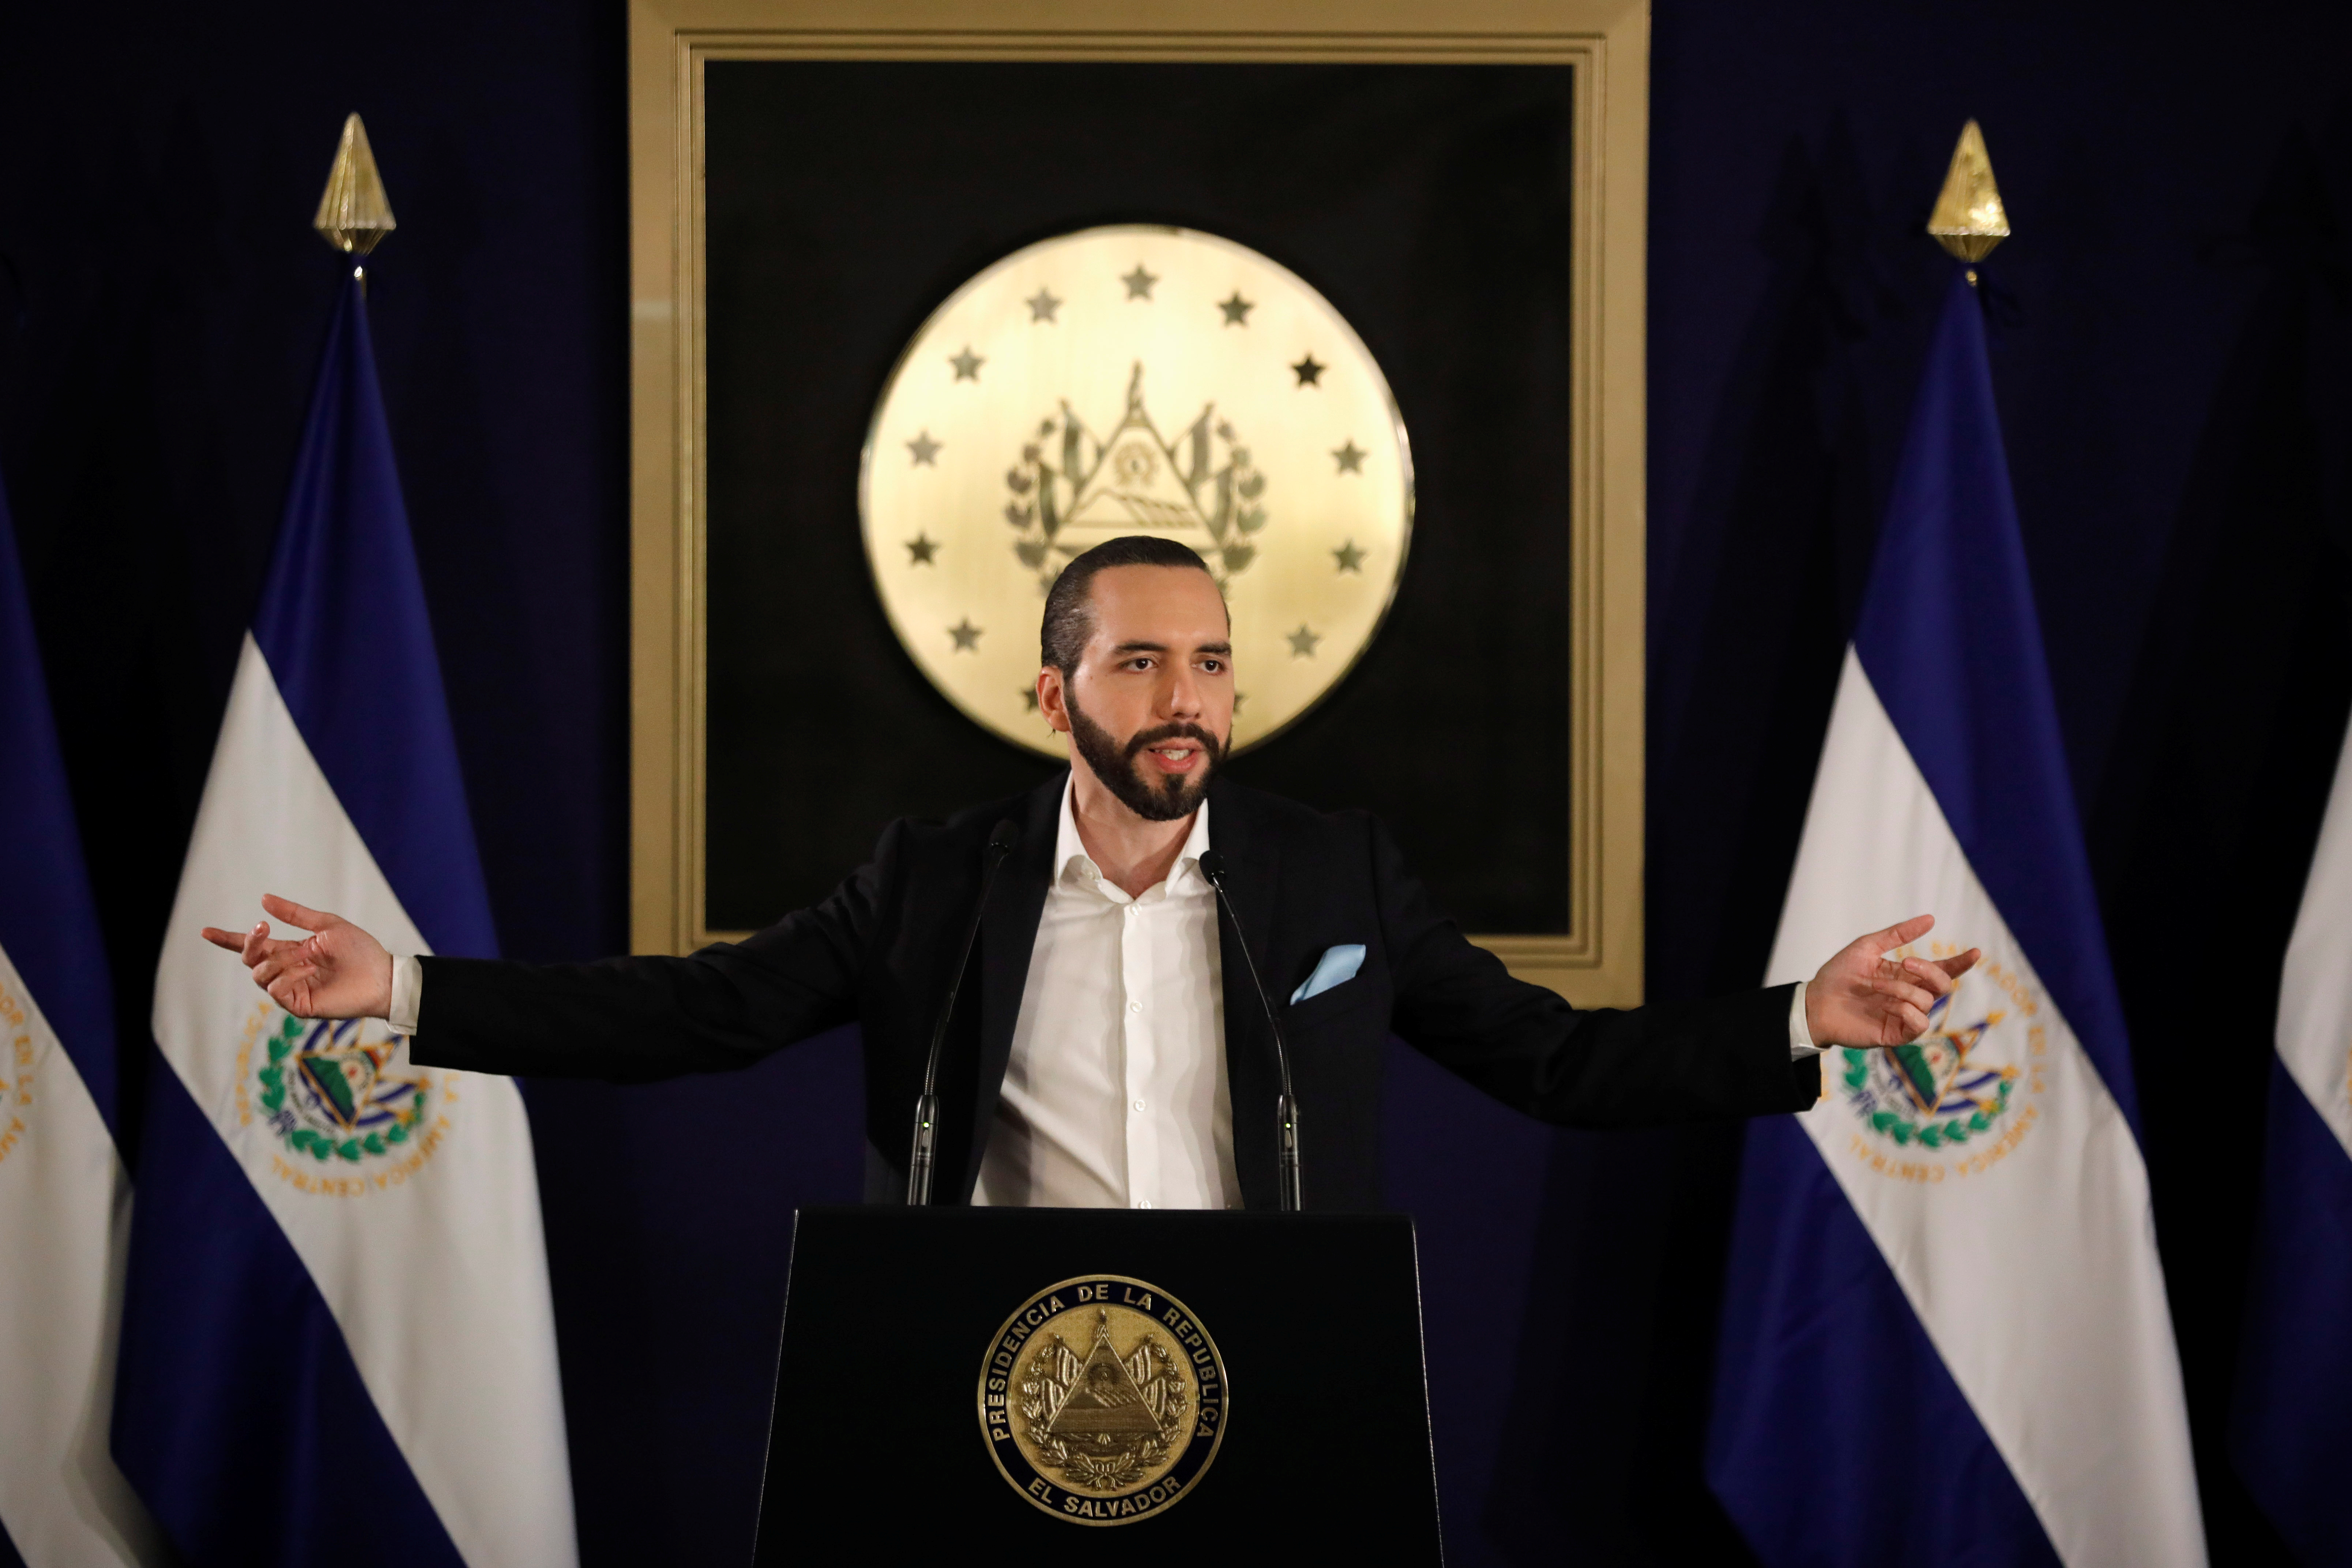 President of El Salvador Nayib Bukele speaks during a news conference about the homicide drop in the last month in San Salvador